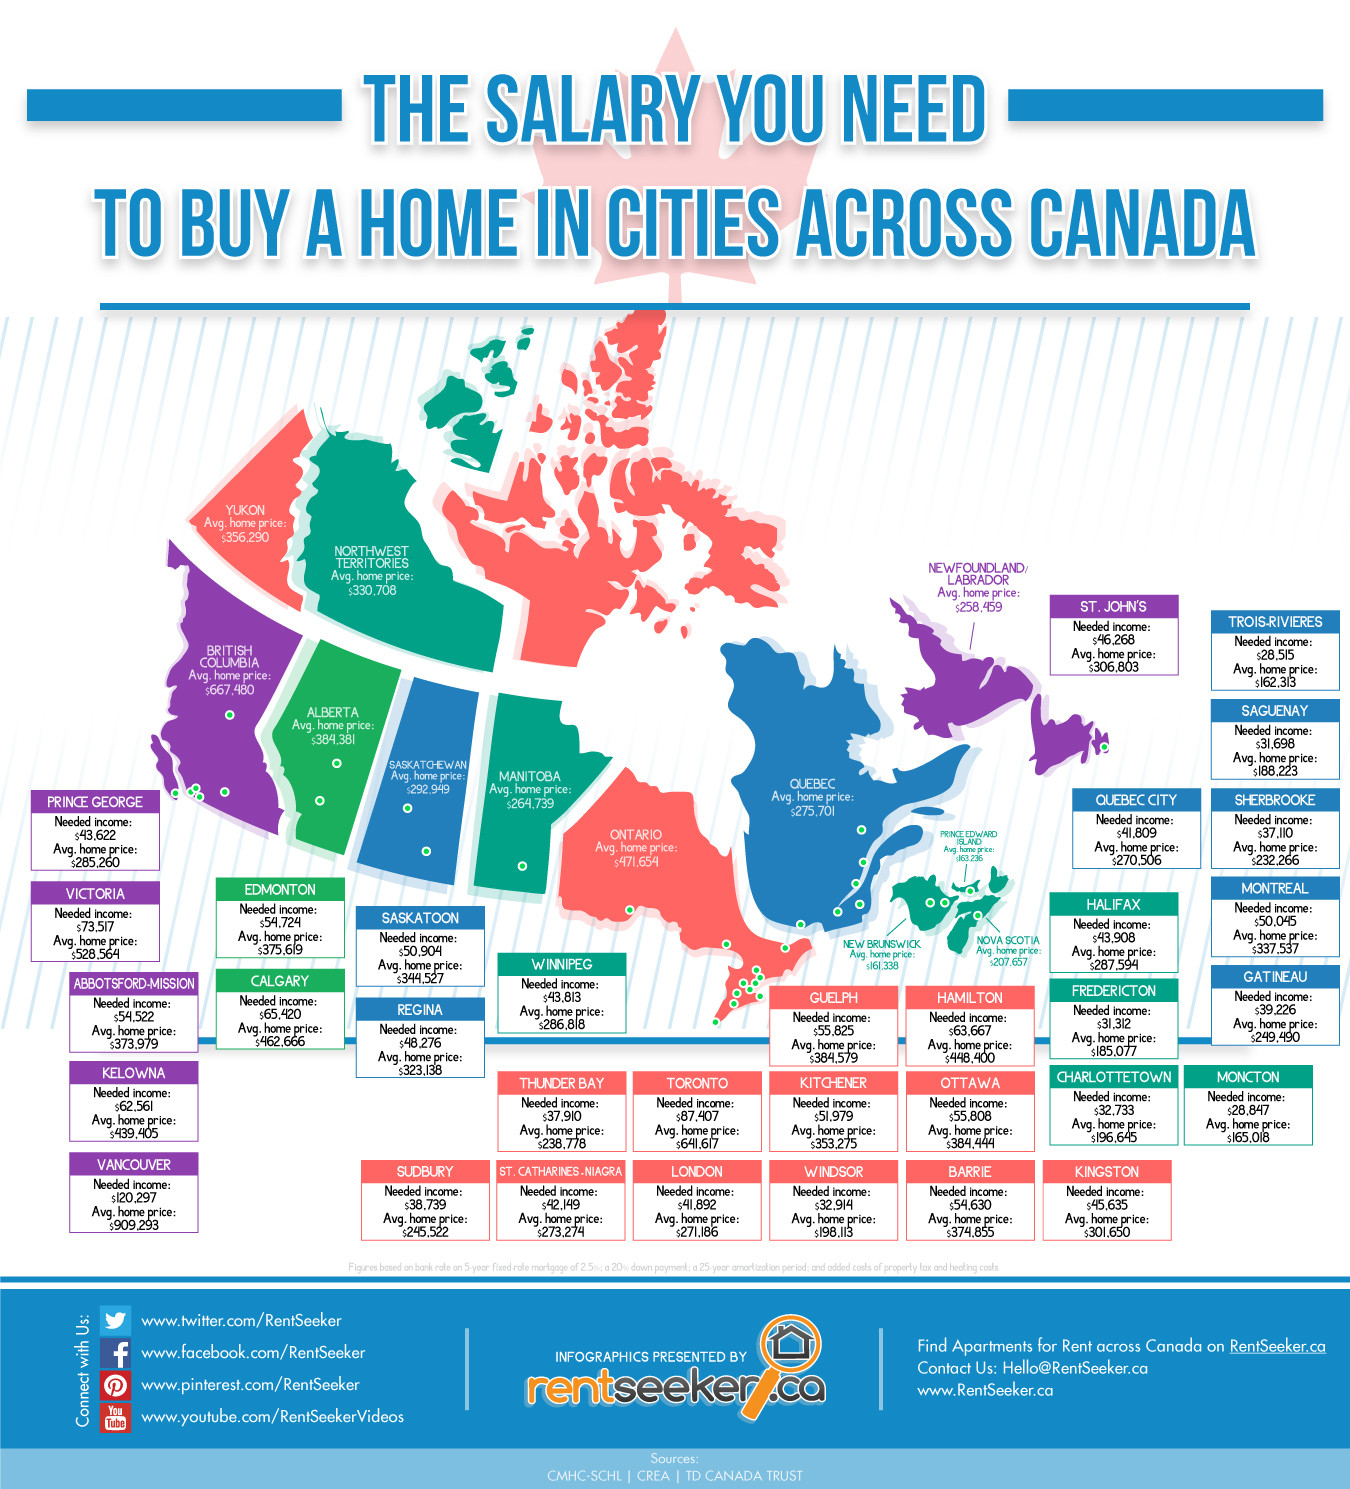 The Salary You Need To Buy A Home In Cities Across Canada